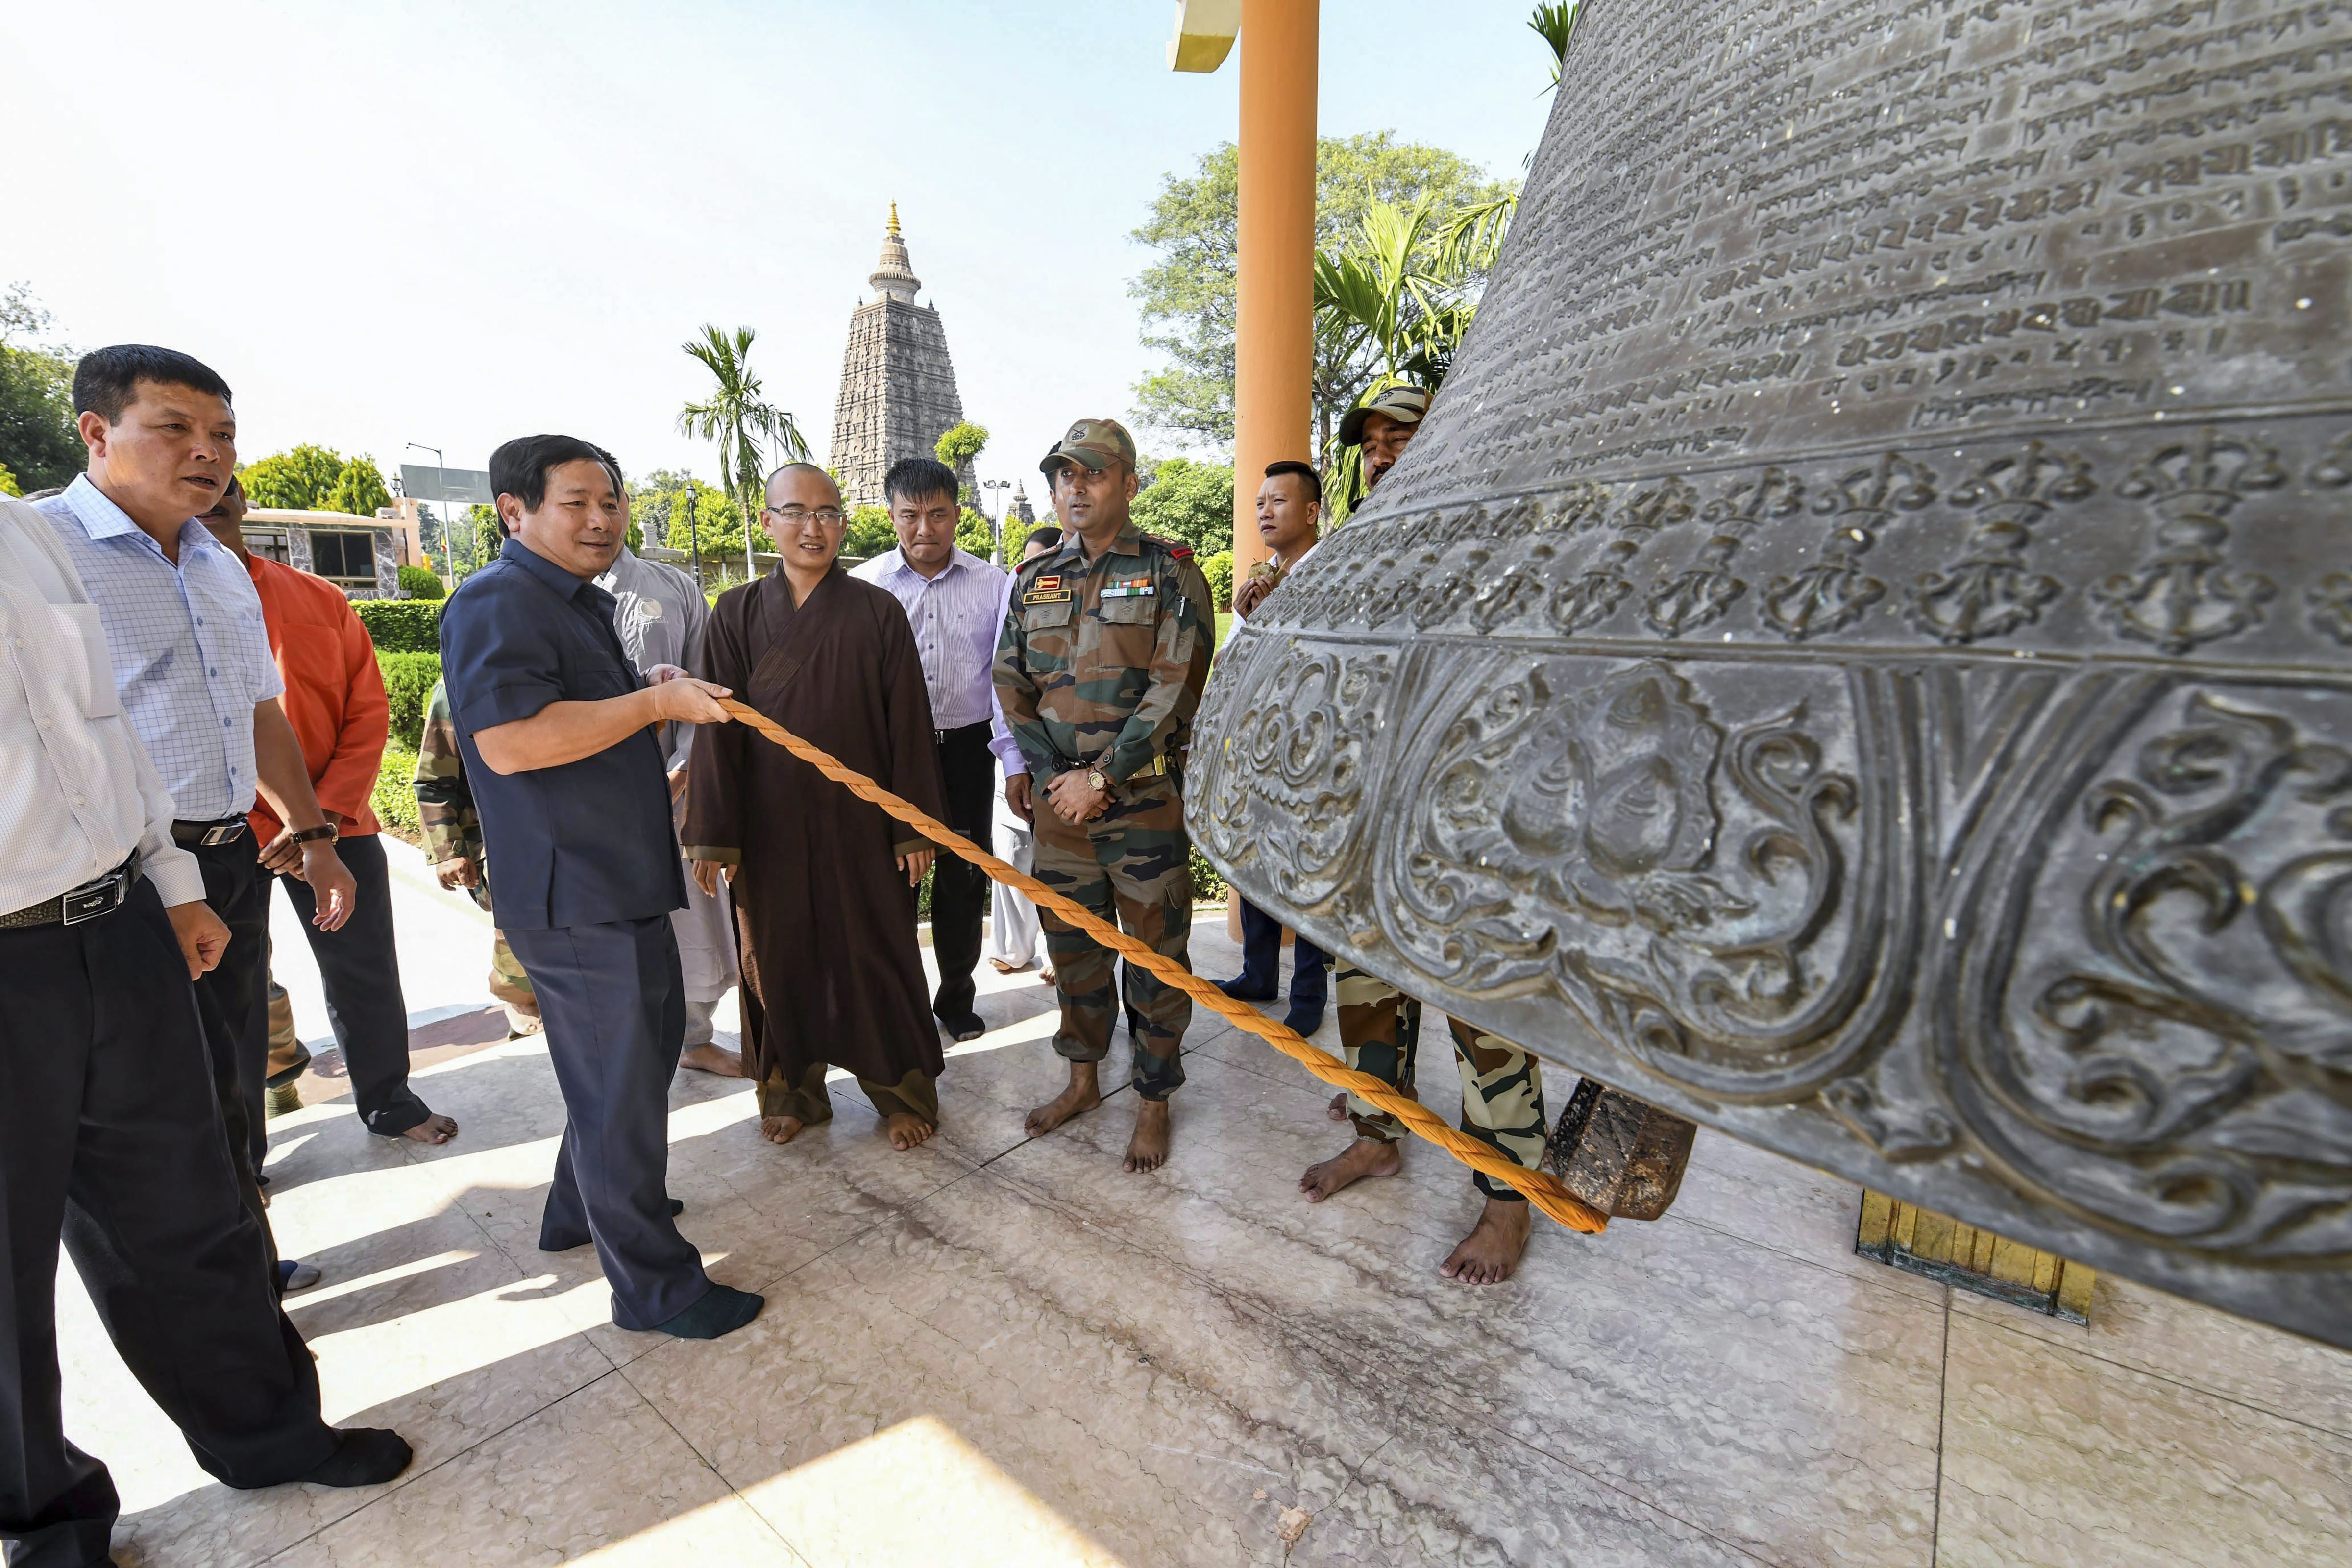 Lt Gen Le Huy Vinh, Commander of Vietnam People's Air Force & Air Defence Service, rings the bell at Mahabodhi Temple during his visit to the heritage site in Bodhgaya, Bihar - PTI